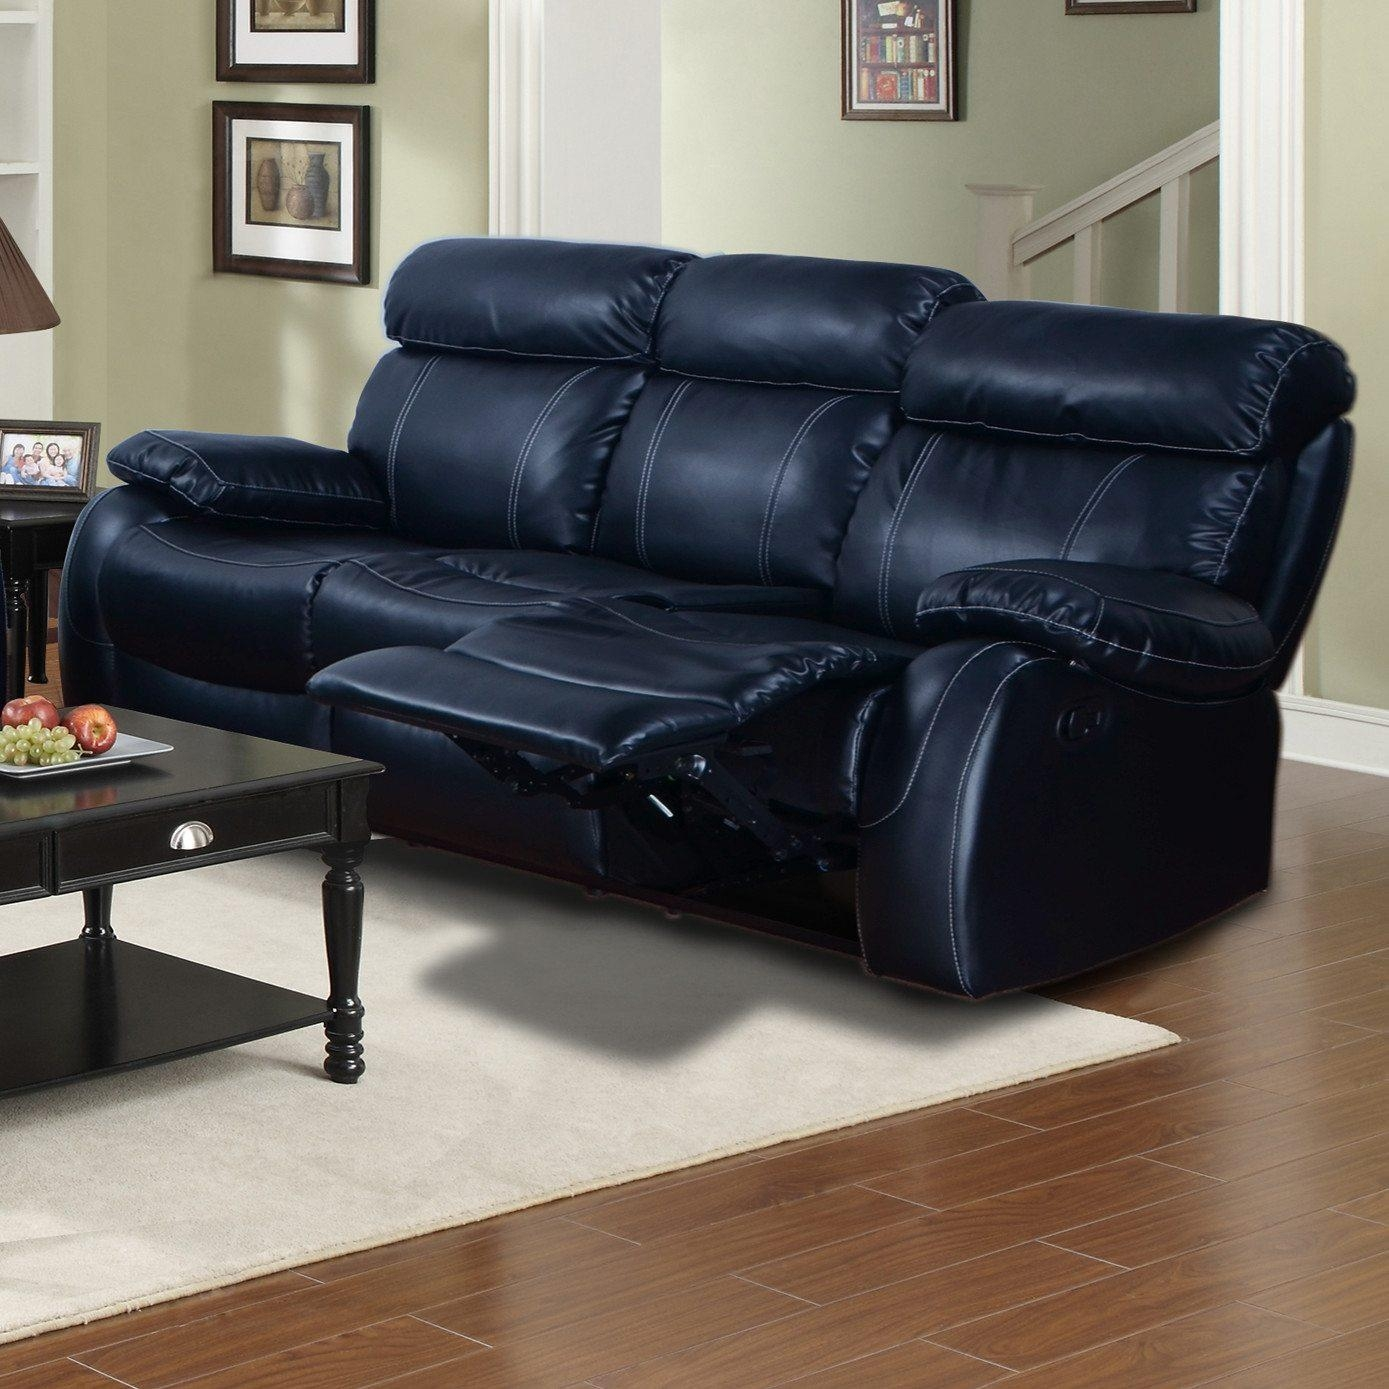 berkline recliner sofa who makes the most comfortable sectional 20 best collection of reclining sofas ideas